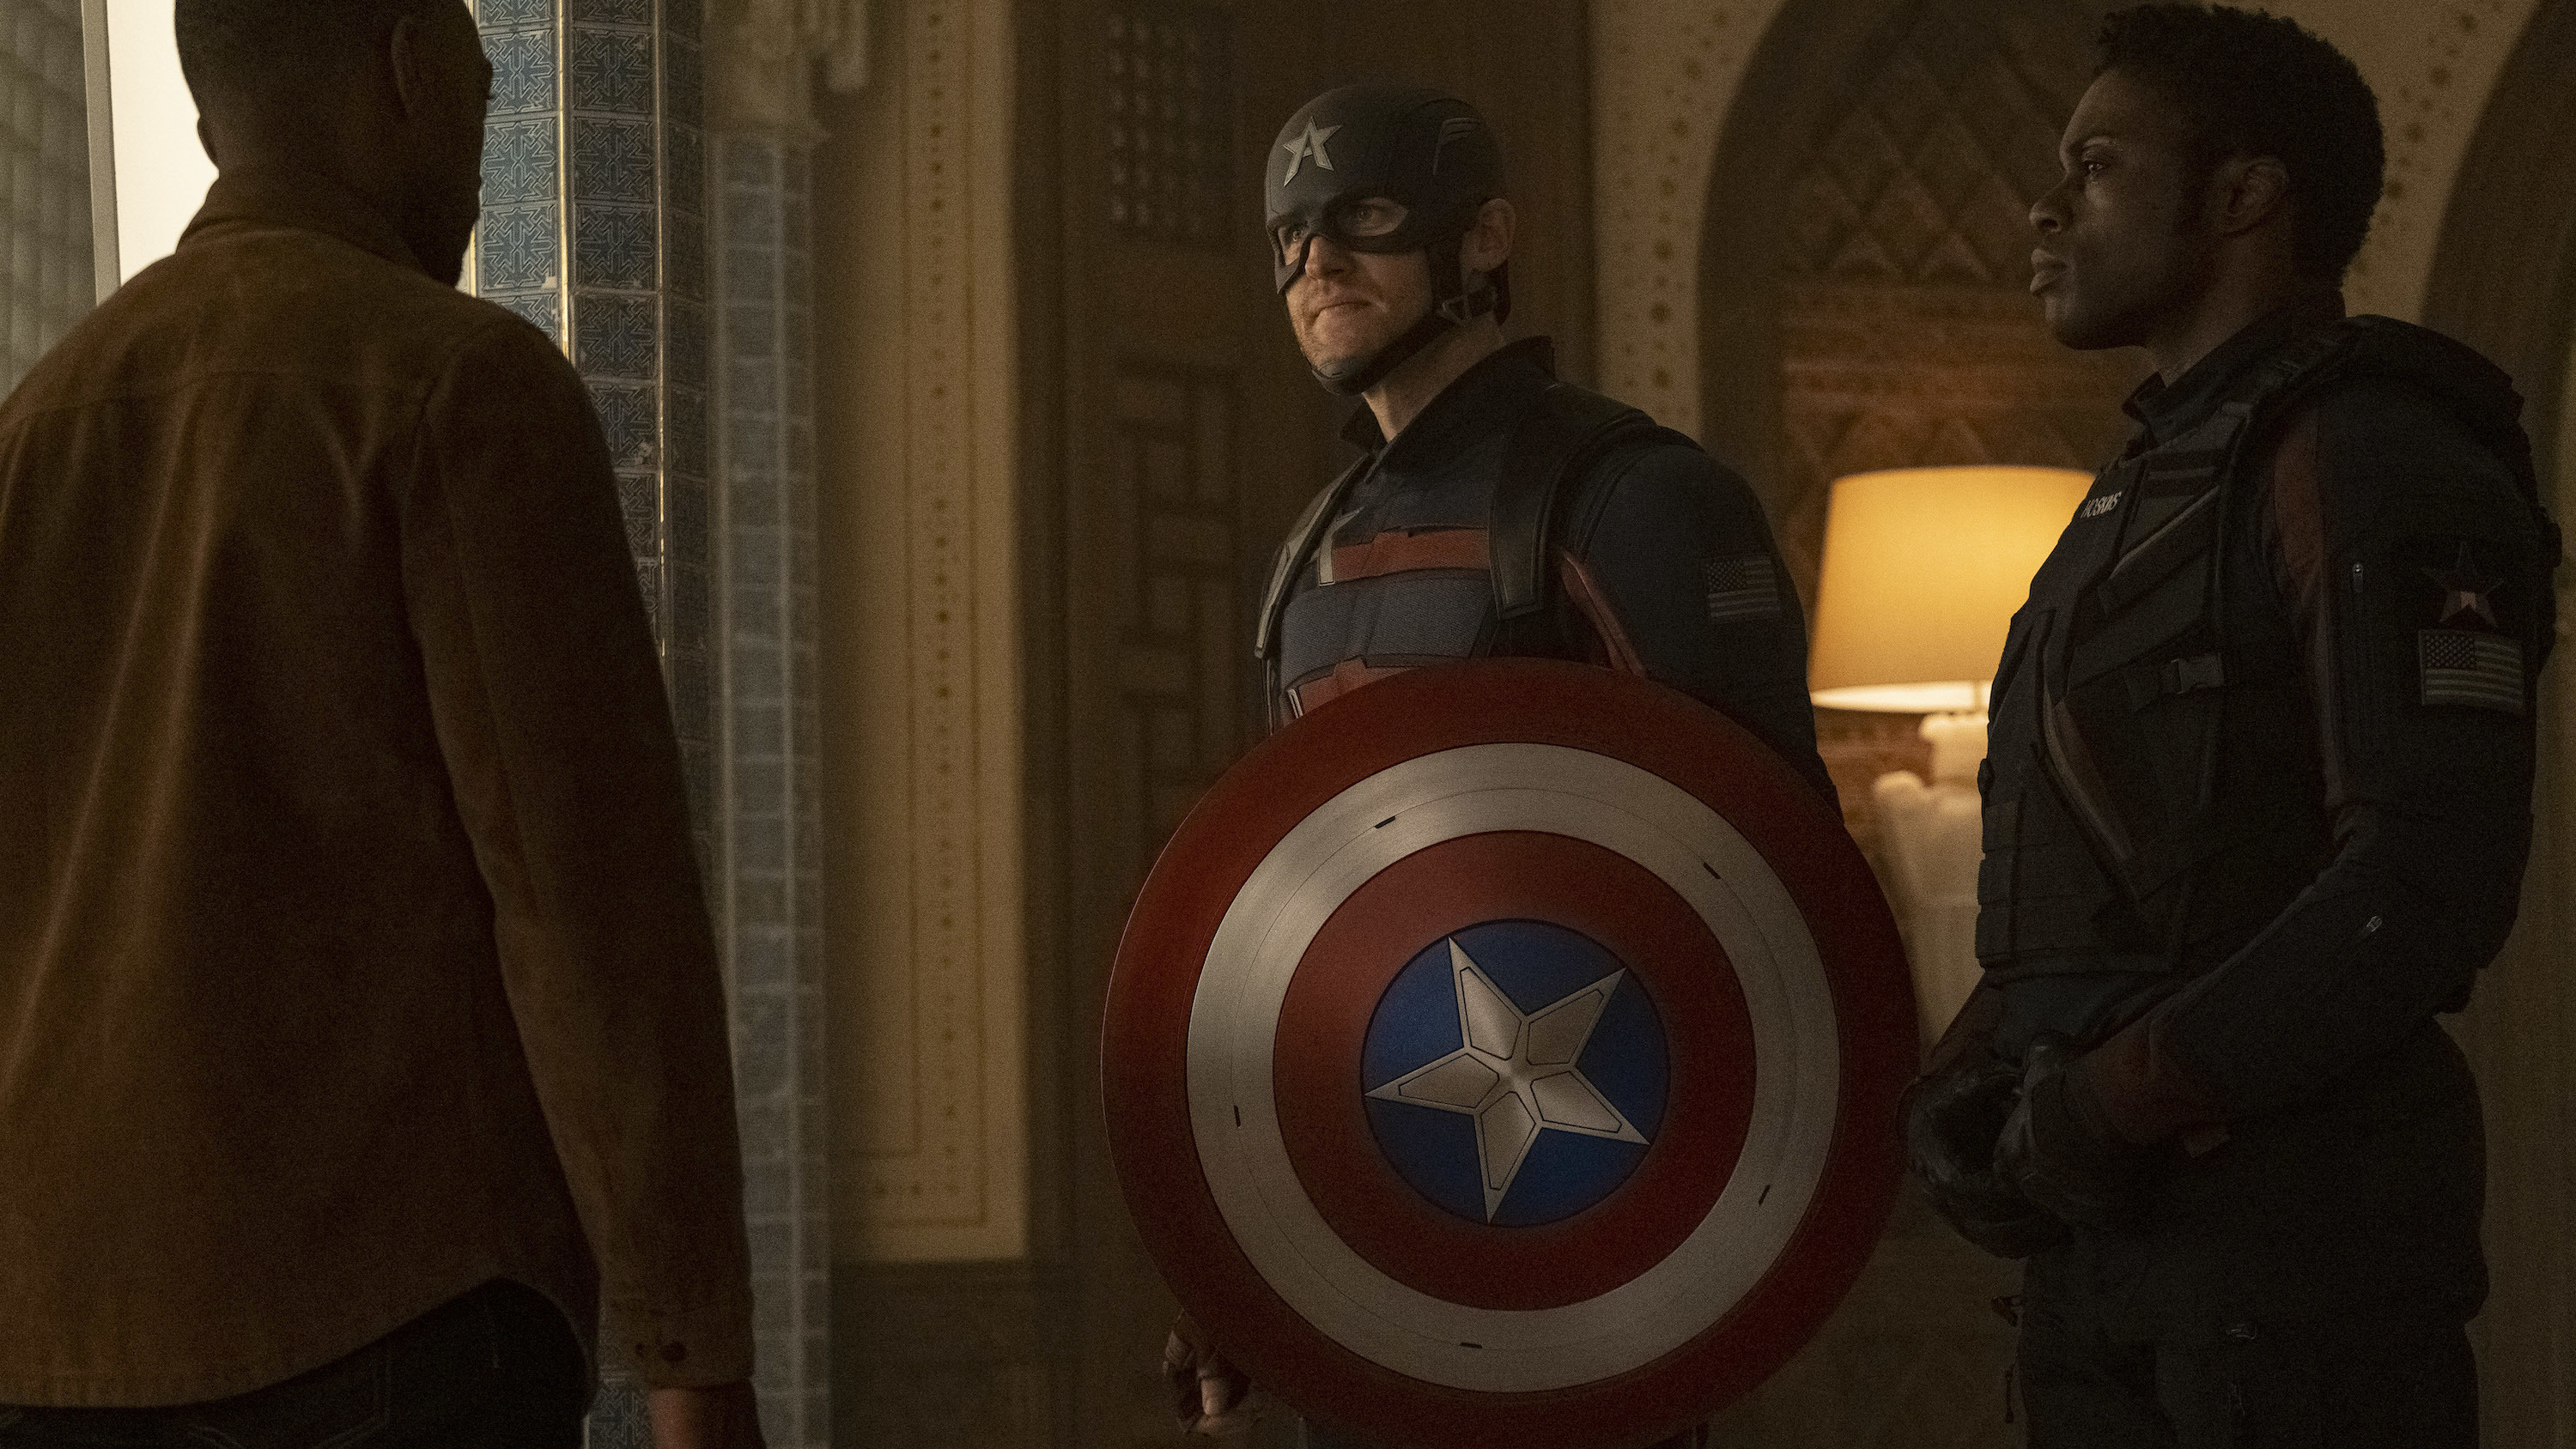 (L-R): Falcon/Sam Wilson (Anthony Mackie), John Walker (Wyatt Russell) and Lemar Hoskins (Clé Bennett) in Marvel Studios' THE FALCON AND THE WINTER SOLDIER exclusively on Disney+. Photo by Chuck Zlotnick. ©Marvel Studios 2021. All Rights Reserved.